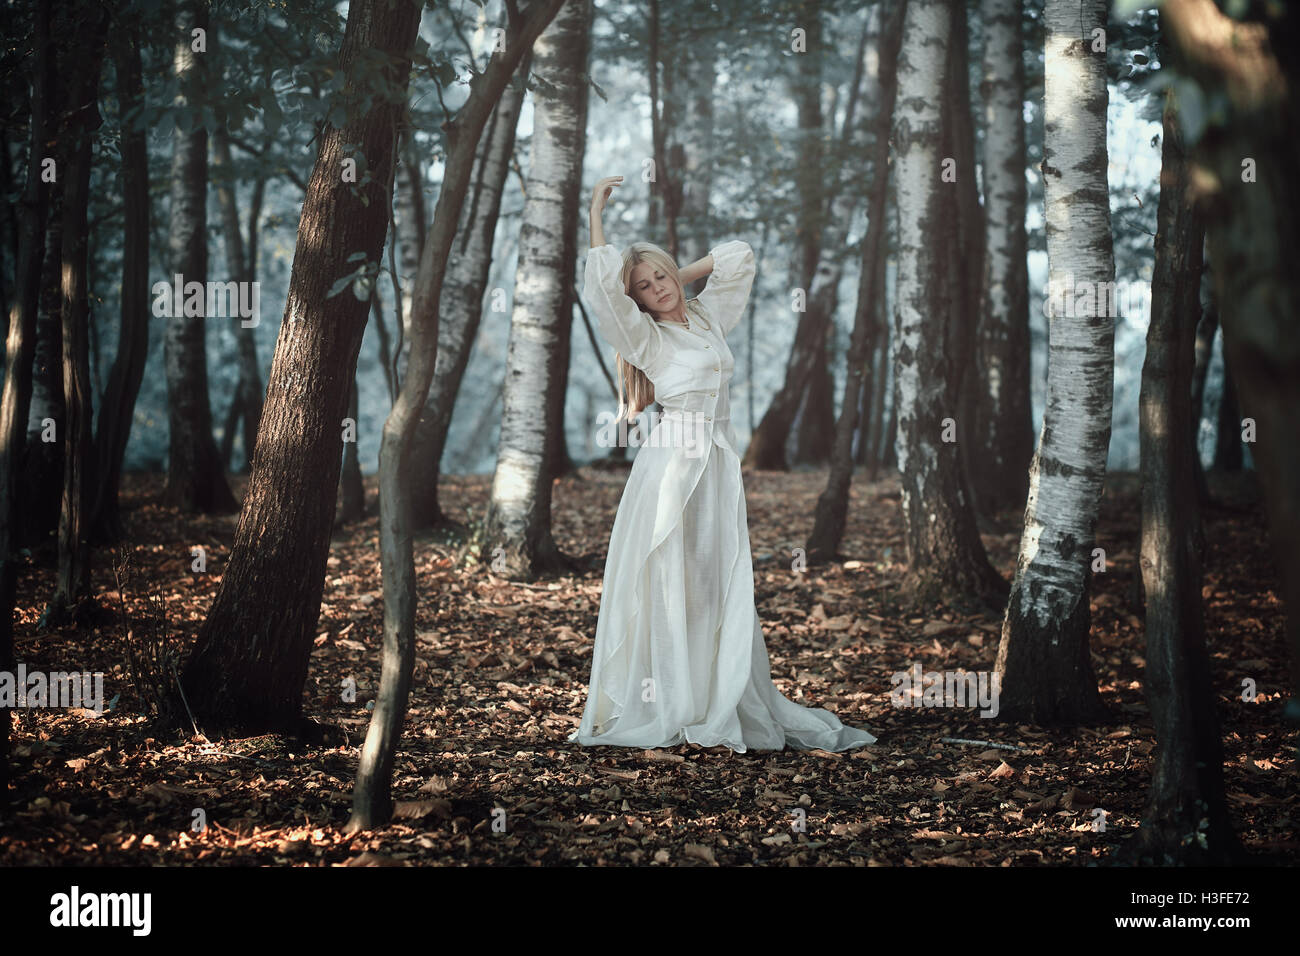 Beautiful Woman Dancing In Ethereal Forest . Fantasy And ...